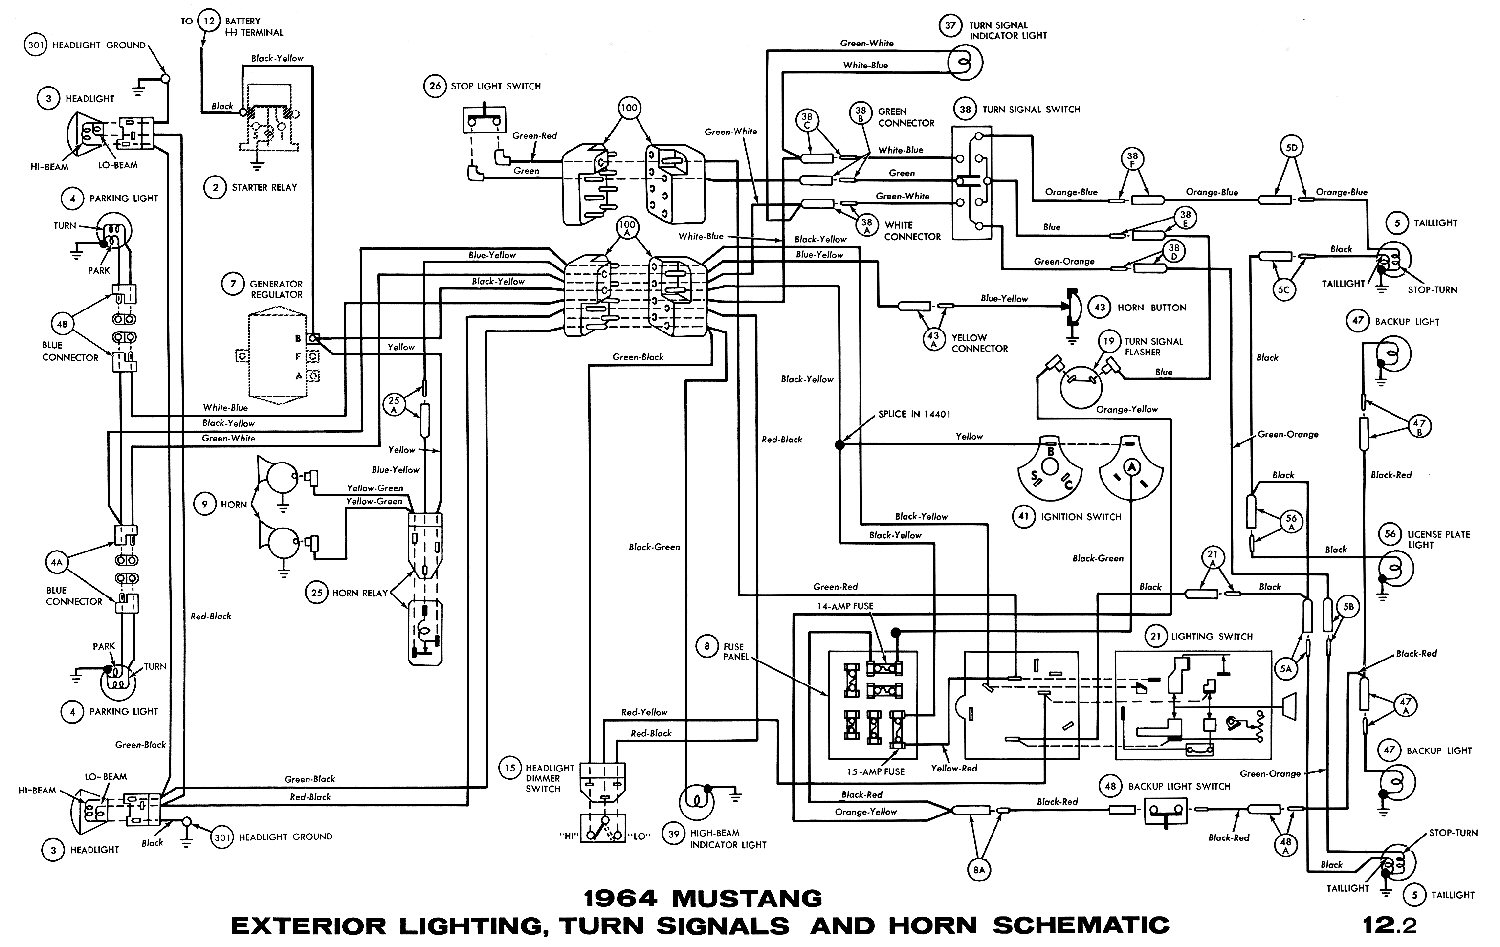 1964i 1964 mustang wiring diagrams average joe restoration 1967 mustang ignition wiring diagram at soozxer.org